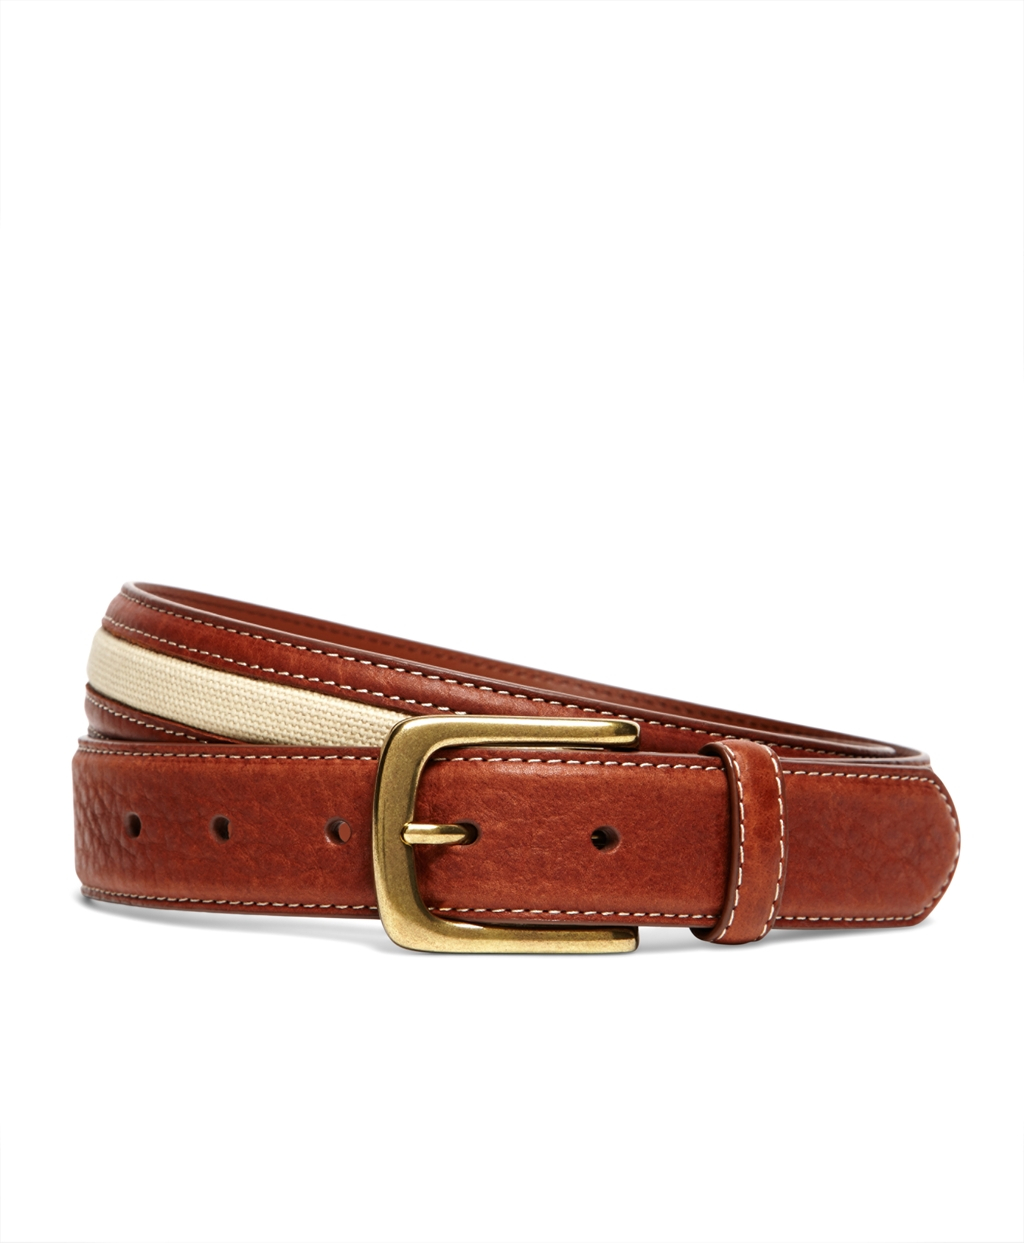 brothers leather with canvas inlay belt in brown